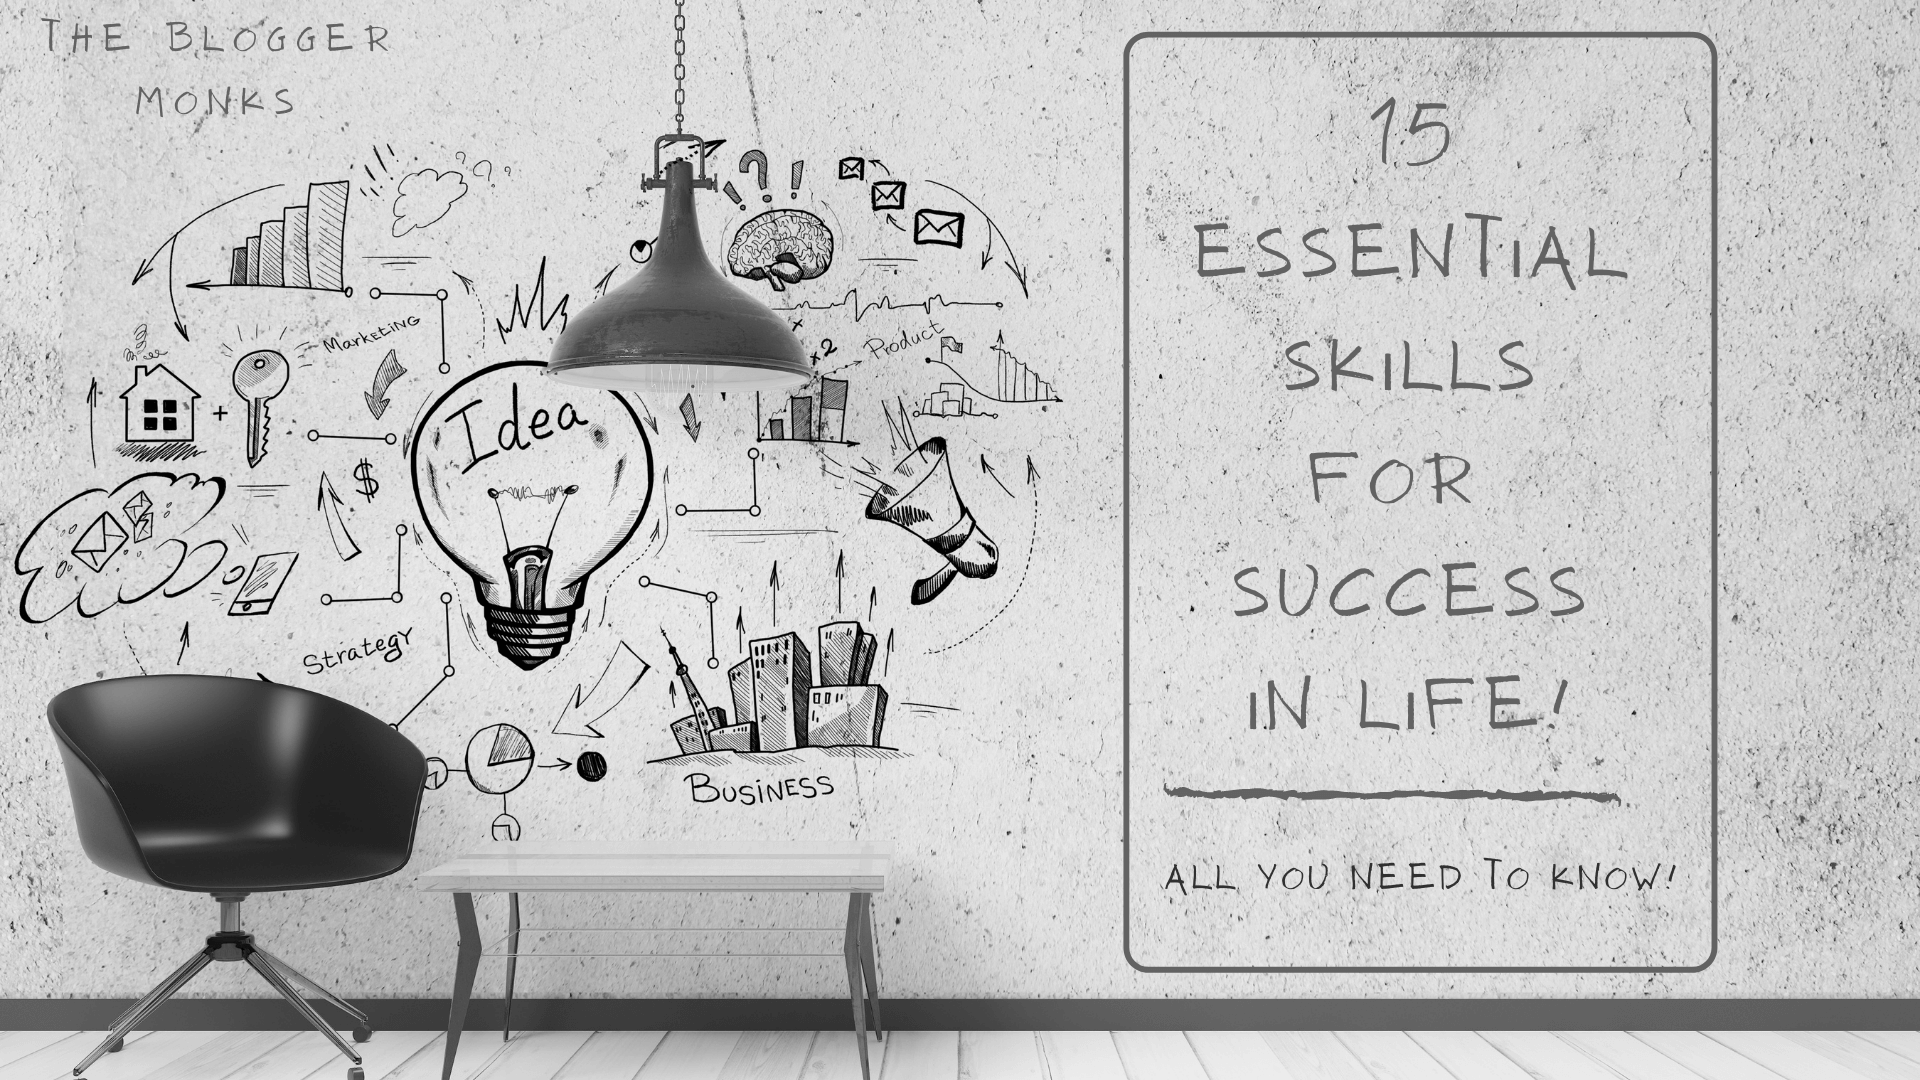 essential skills for success in life